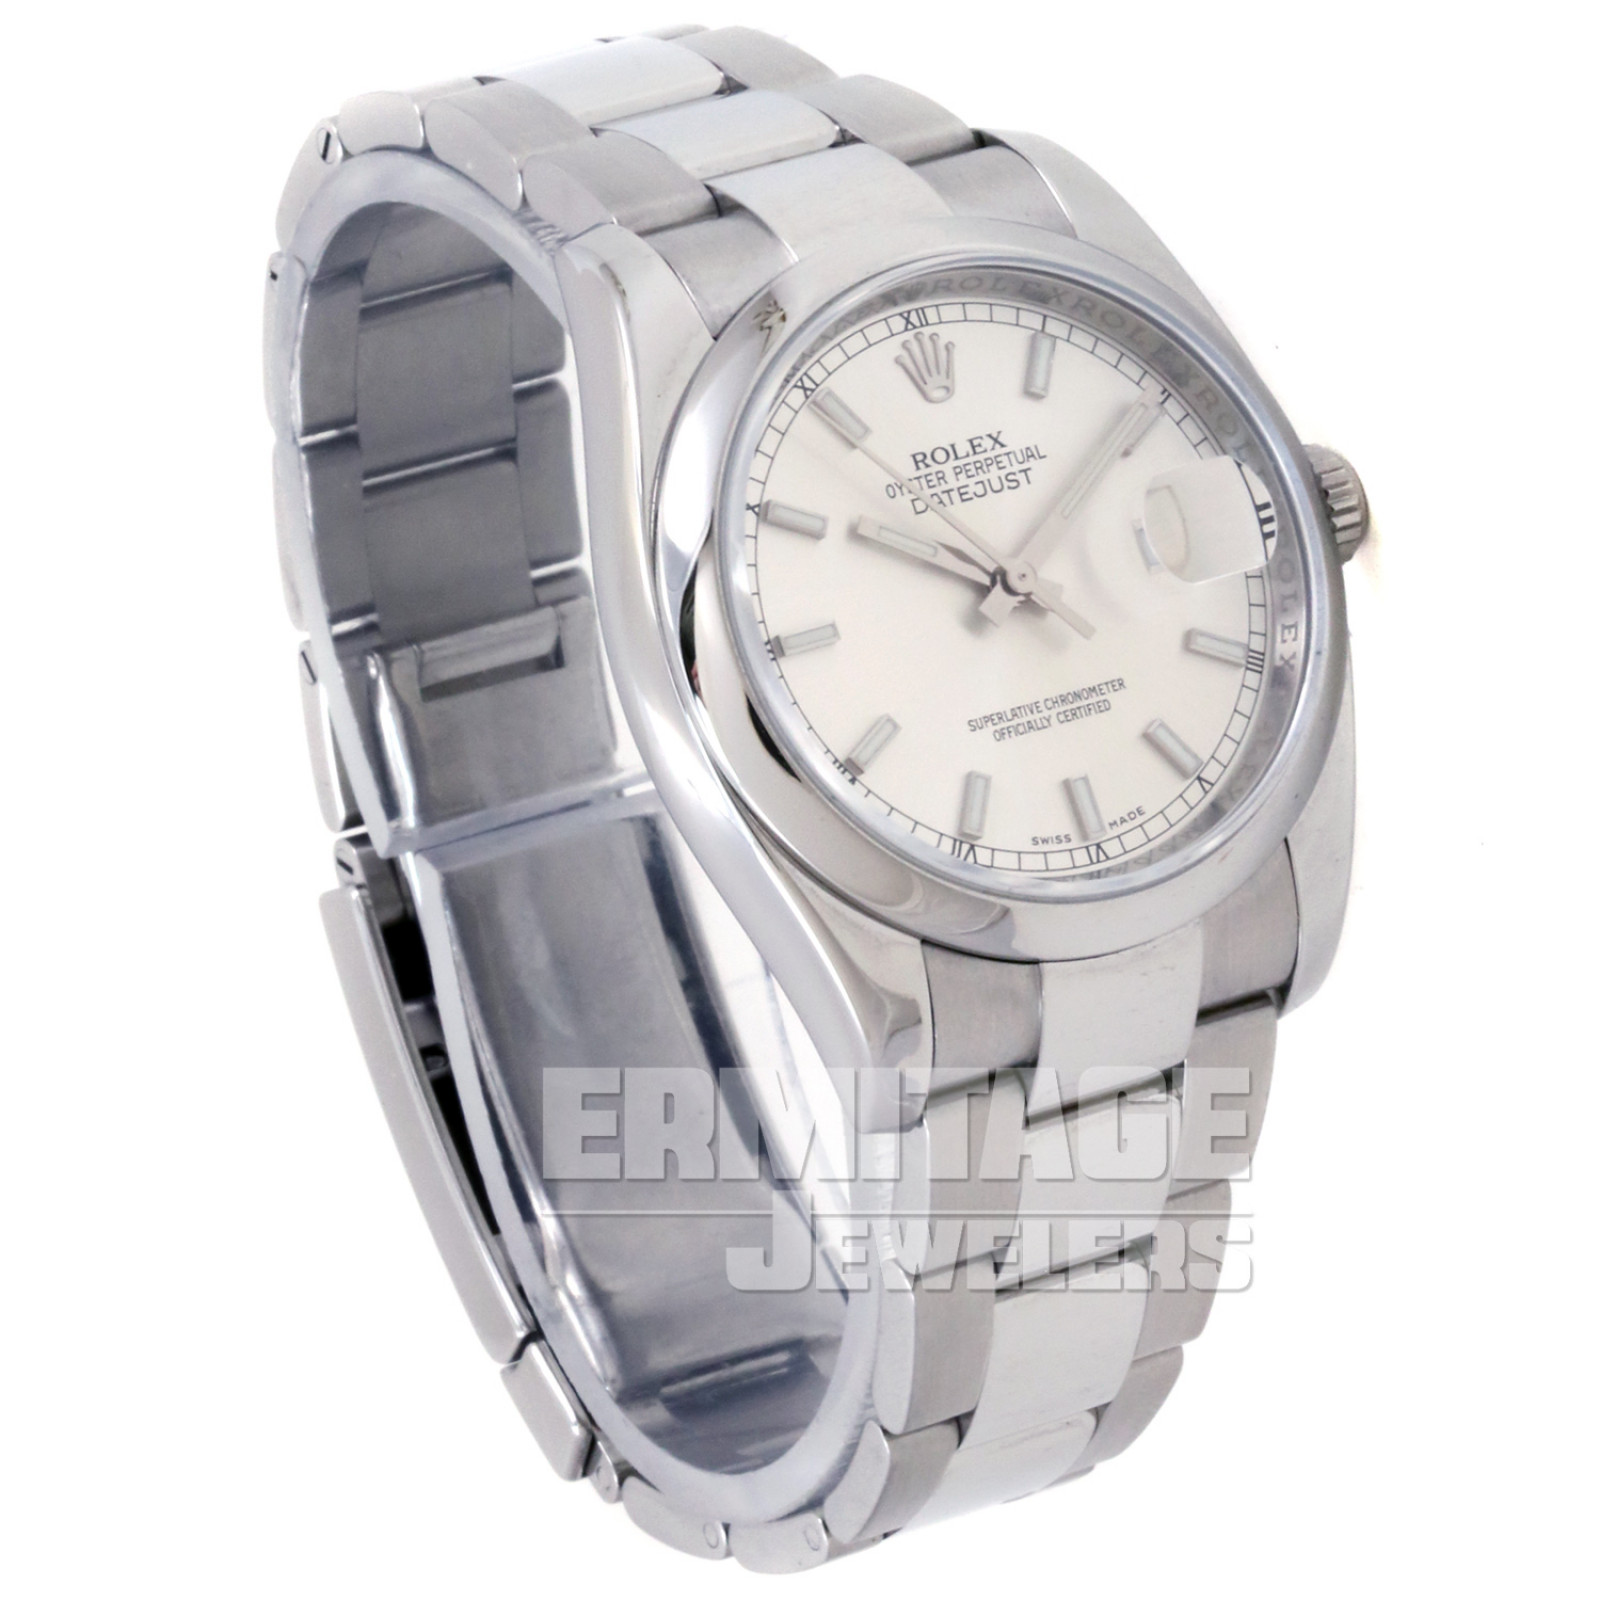 Steel on Oyster Rolex Datejust 116200 36 mm